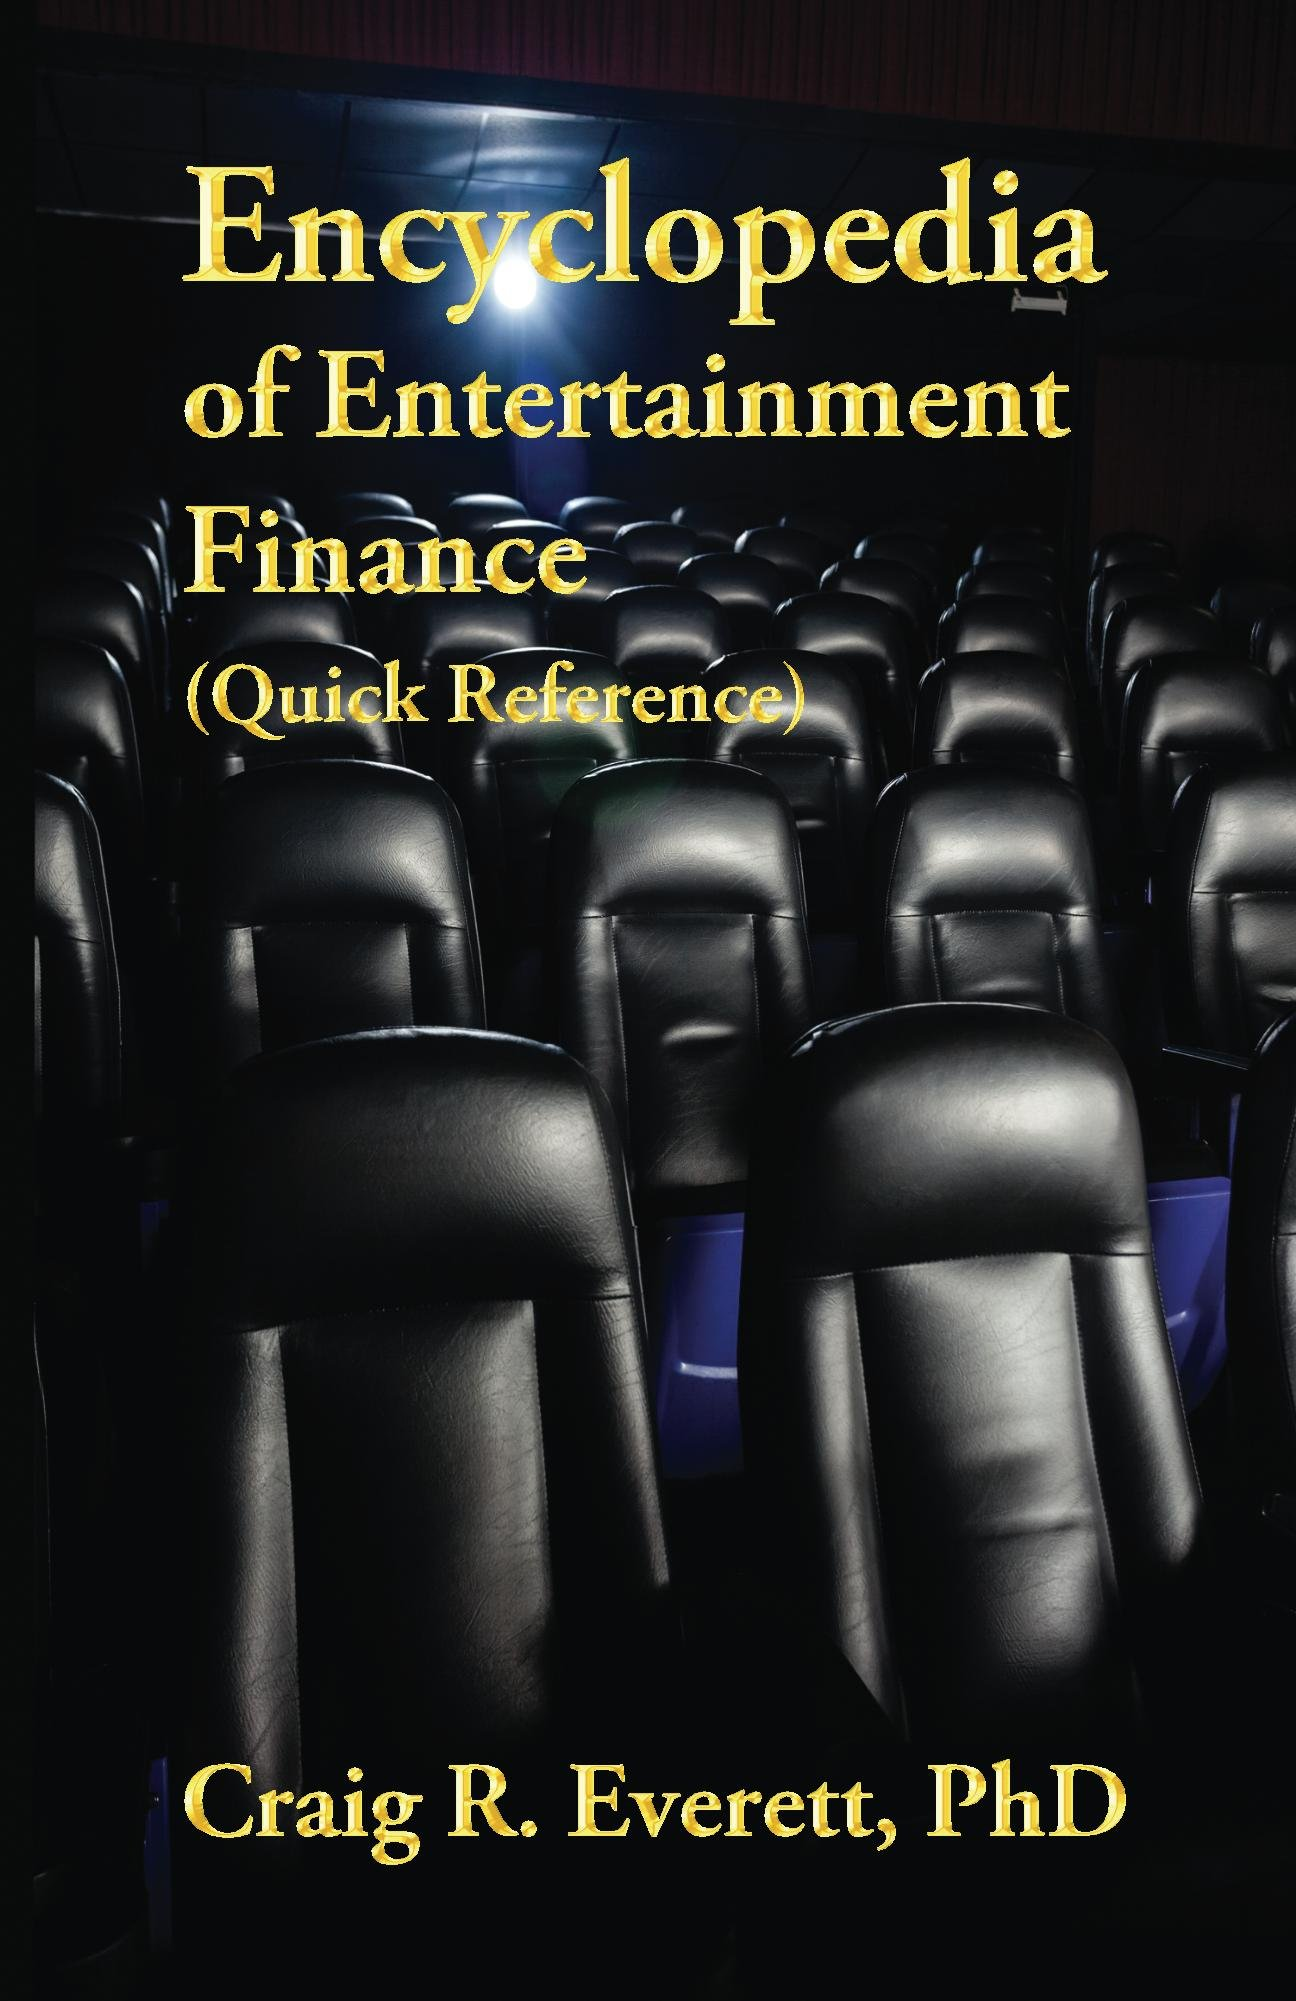 Encyclopedia of Entertainment Finance (Quick Reference): Handy Guide to Financial Jargon in the Motion Picture Industry